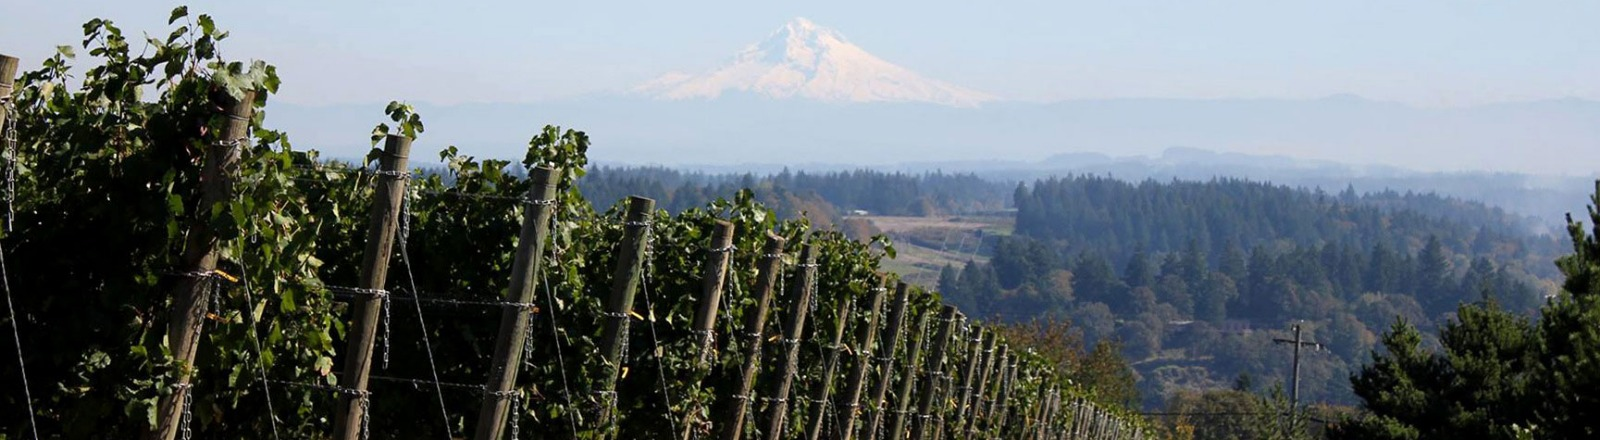 Pete's Mountain Vineyard's long row of end posts with rows of green grape vines and view of snow covered Mt. Hood in distance